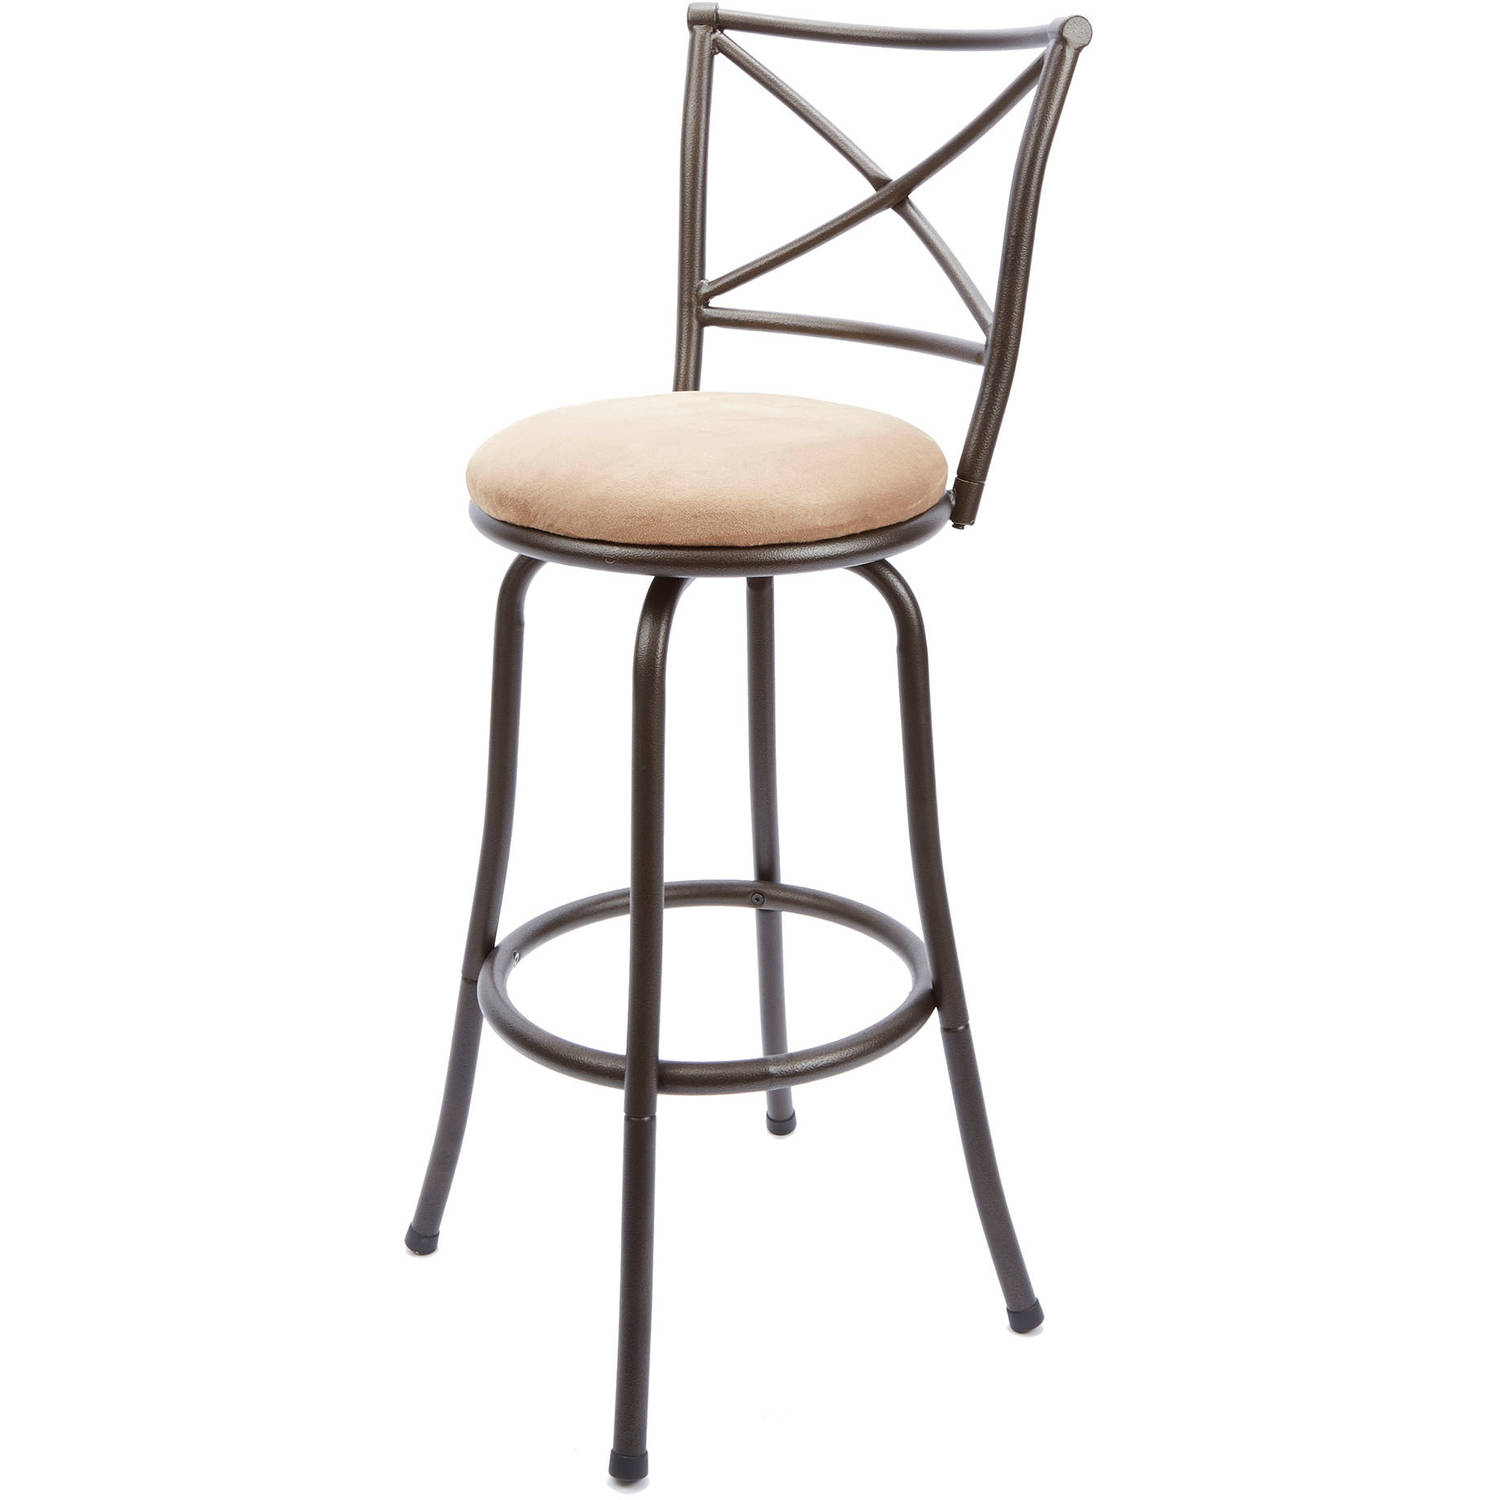 """Mainstays 29"""" Swivel X-Back Hammered Bronze Bar Stool, Multiple Colors by Generic"""